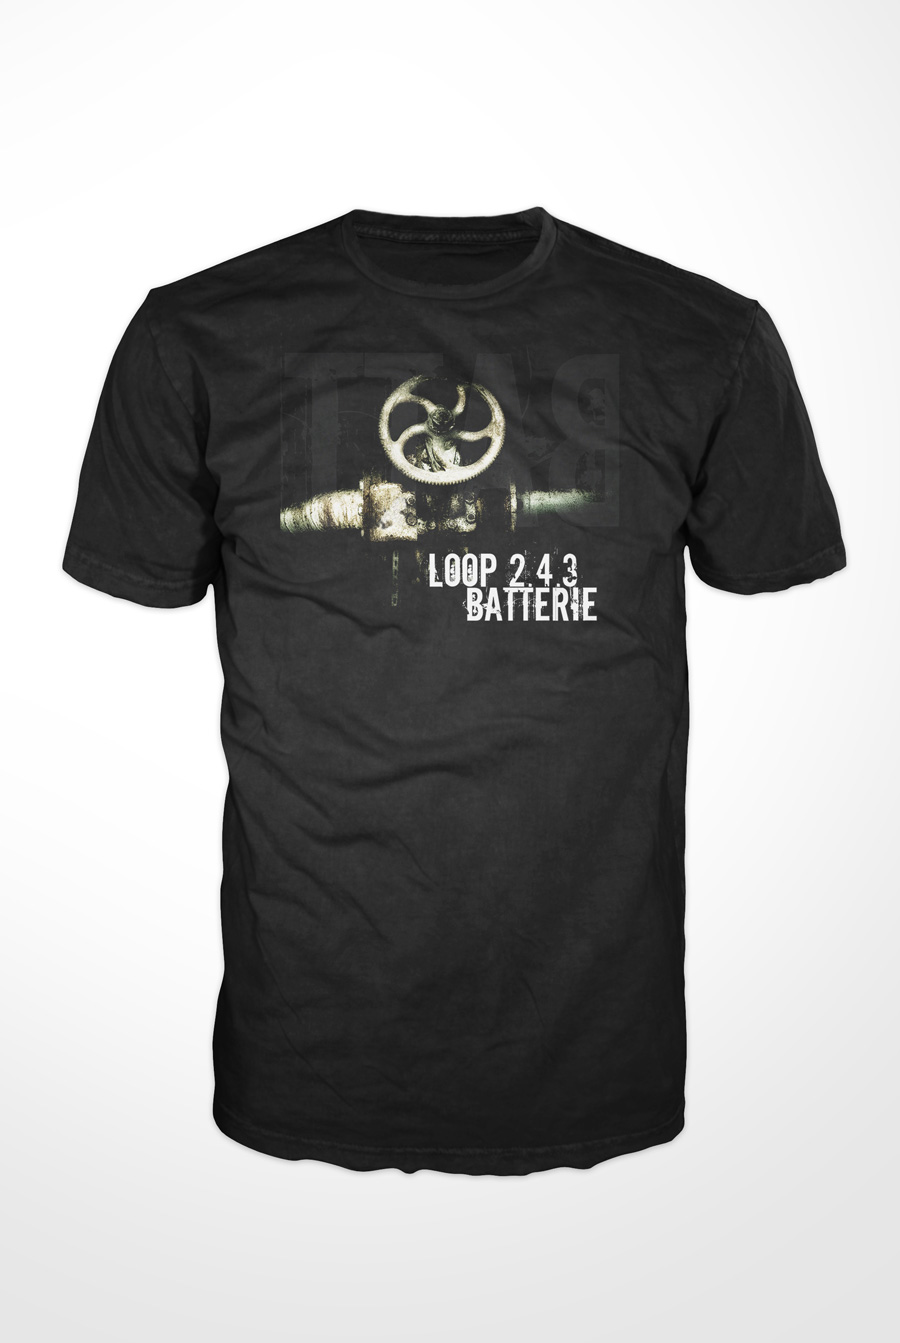 LOOP 2.4.3 'BATTERIE' T-SHIRT